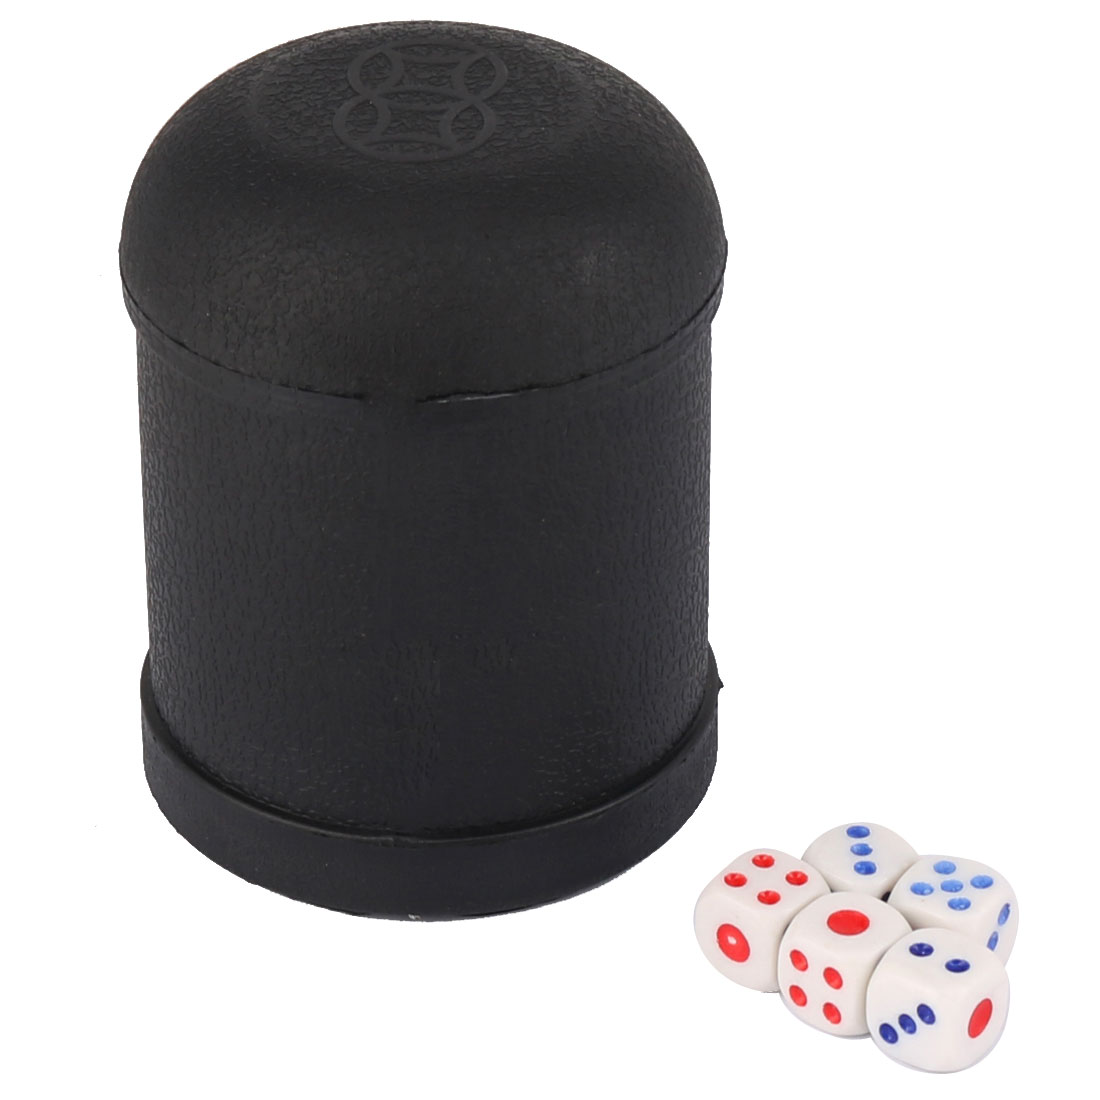 KTV Pub Bar Party Casual Toy Plastic Round Shaker Cup Black w 5 Dices